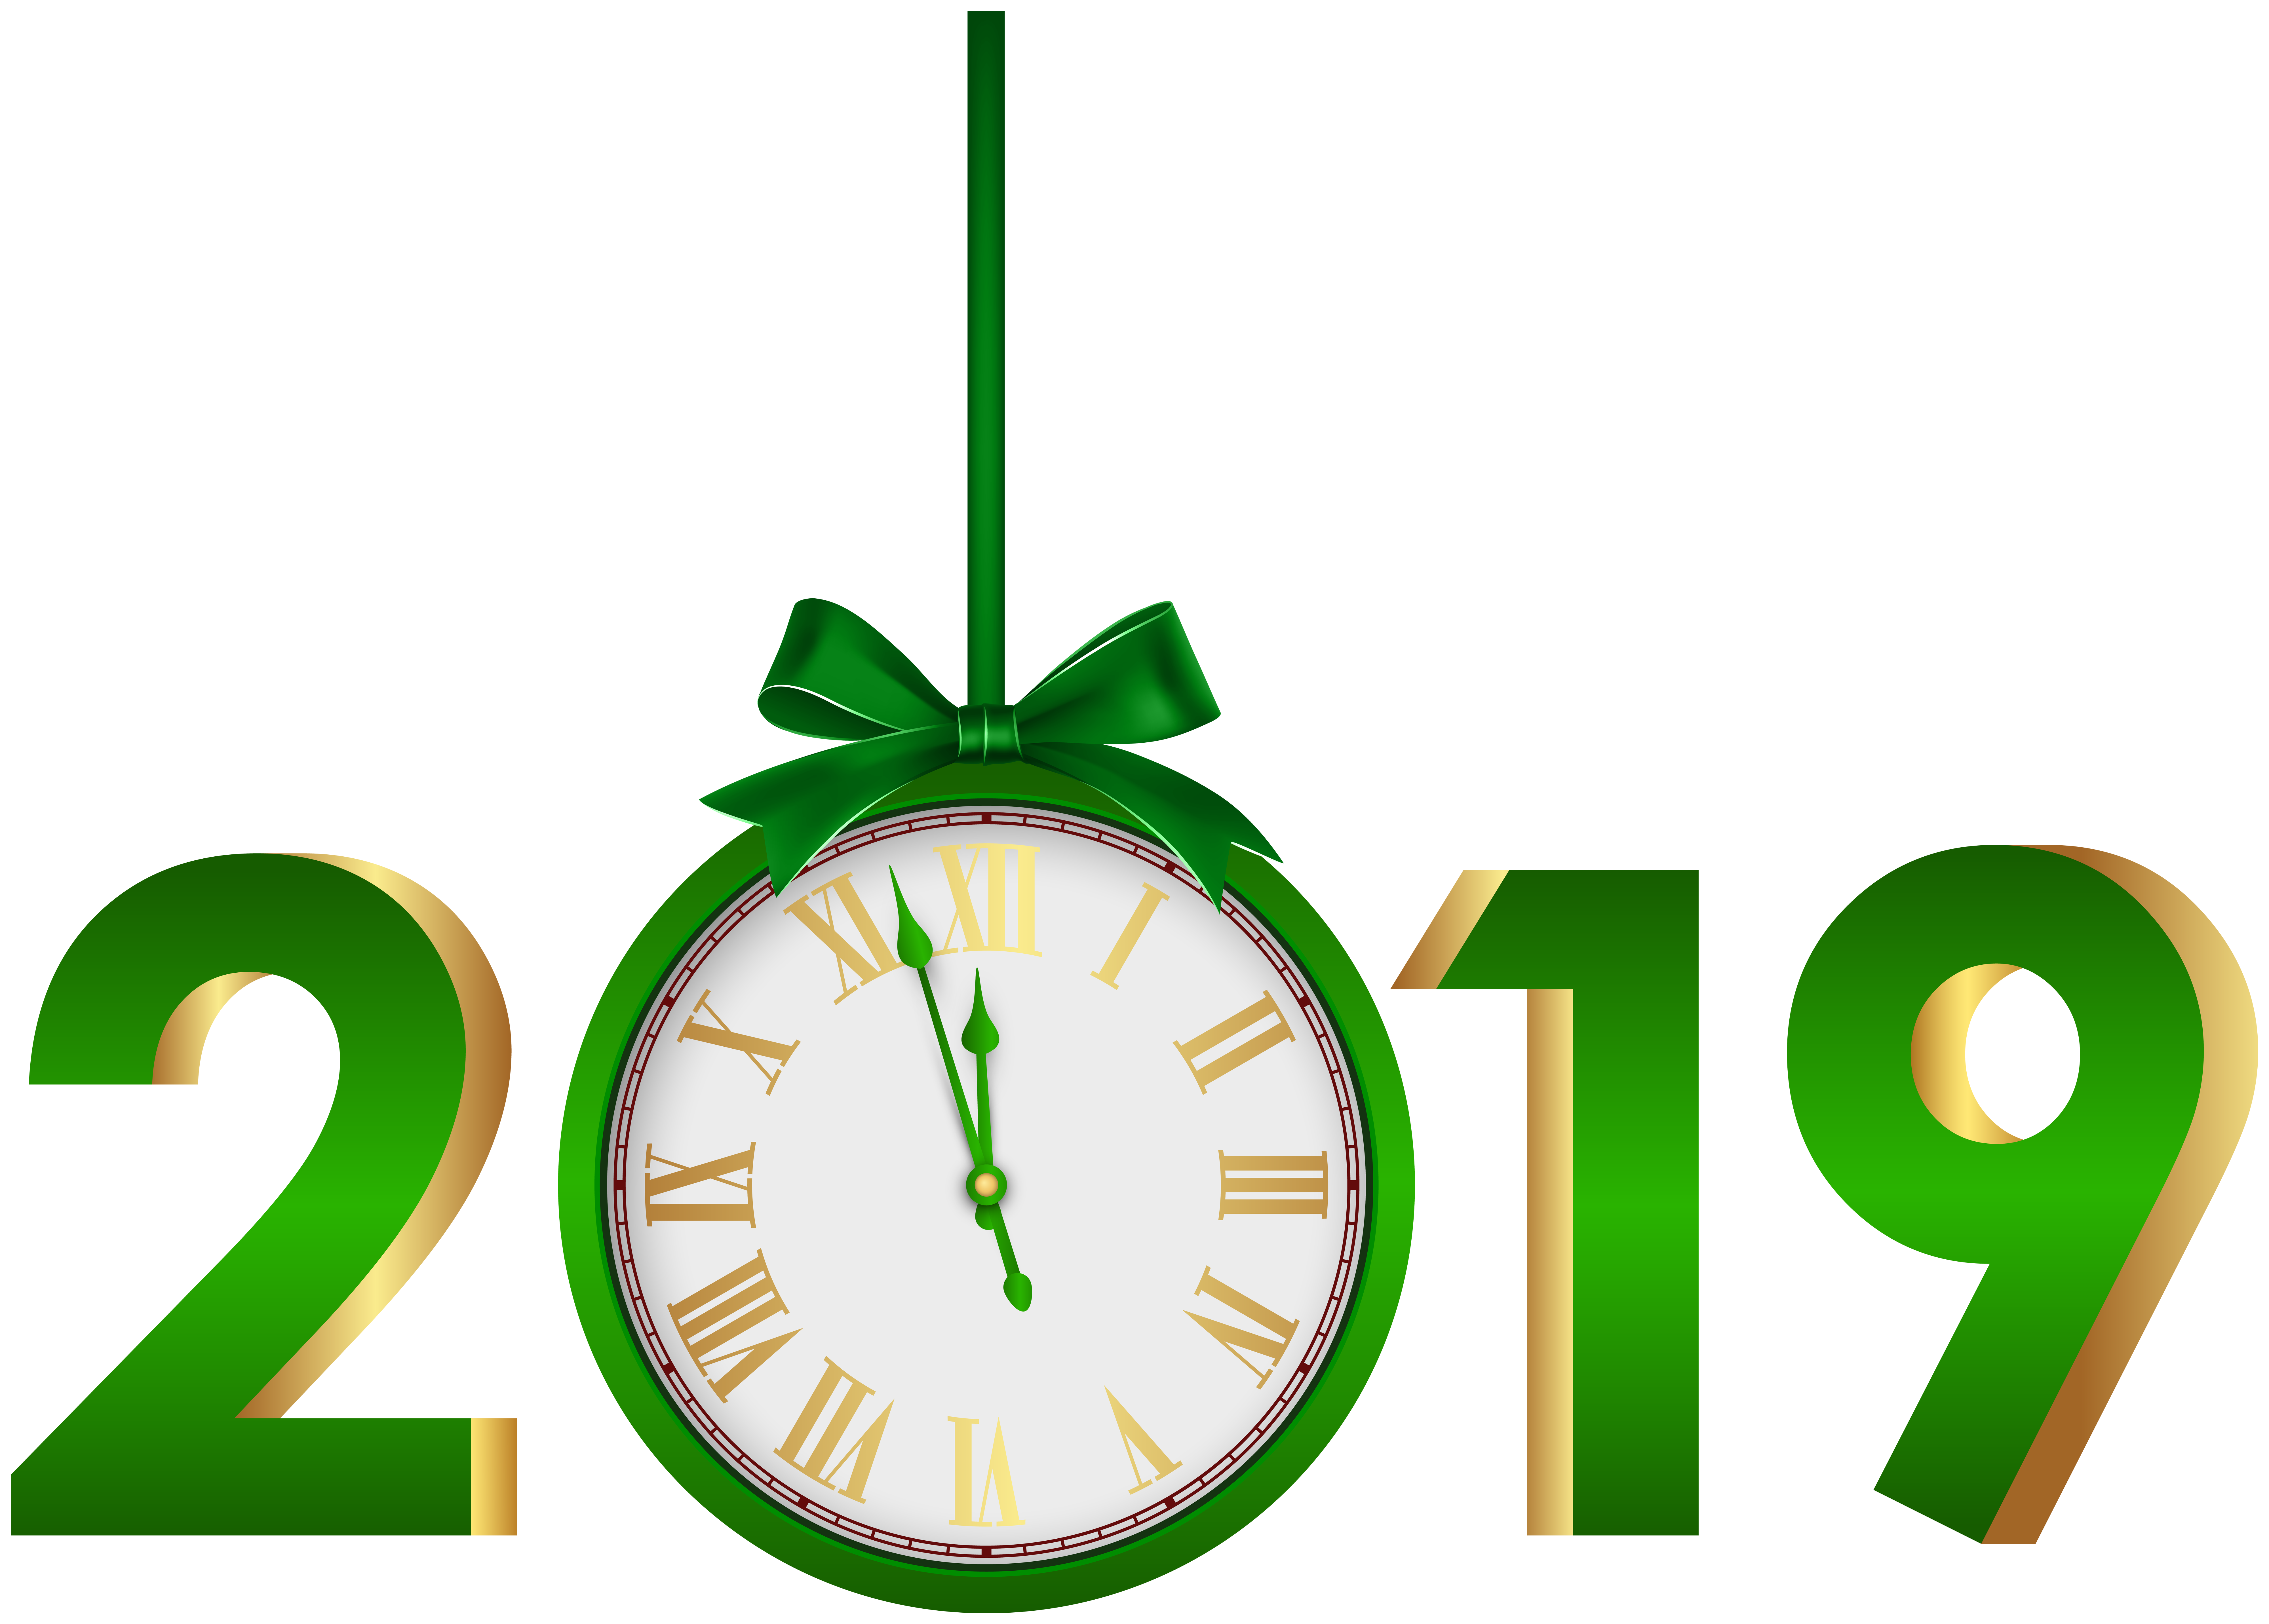 Green clipart. With clock png